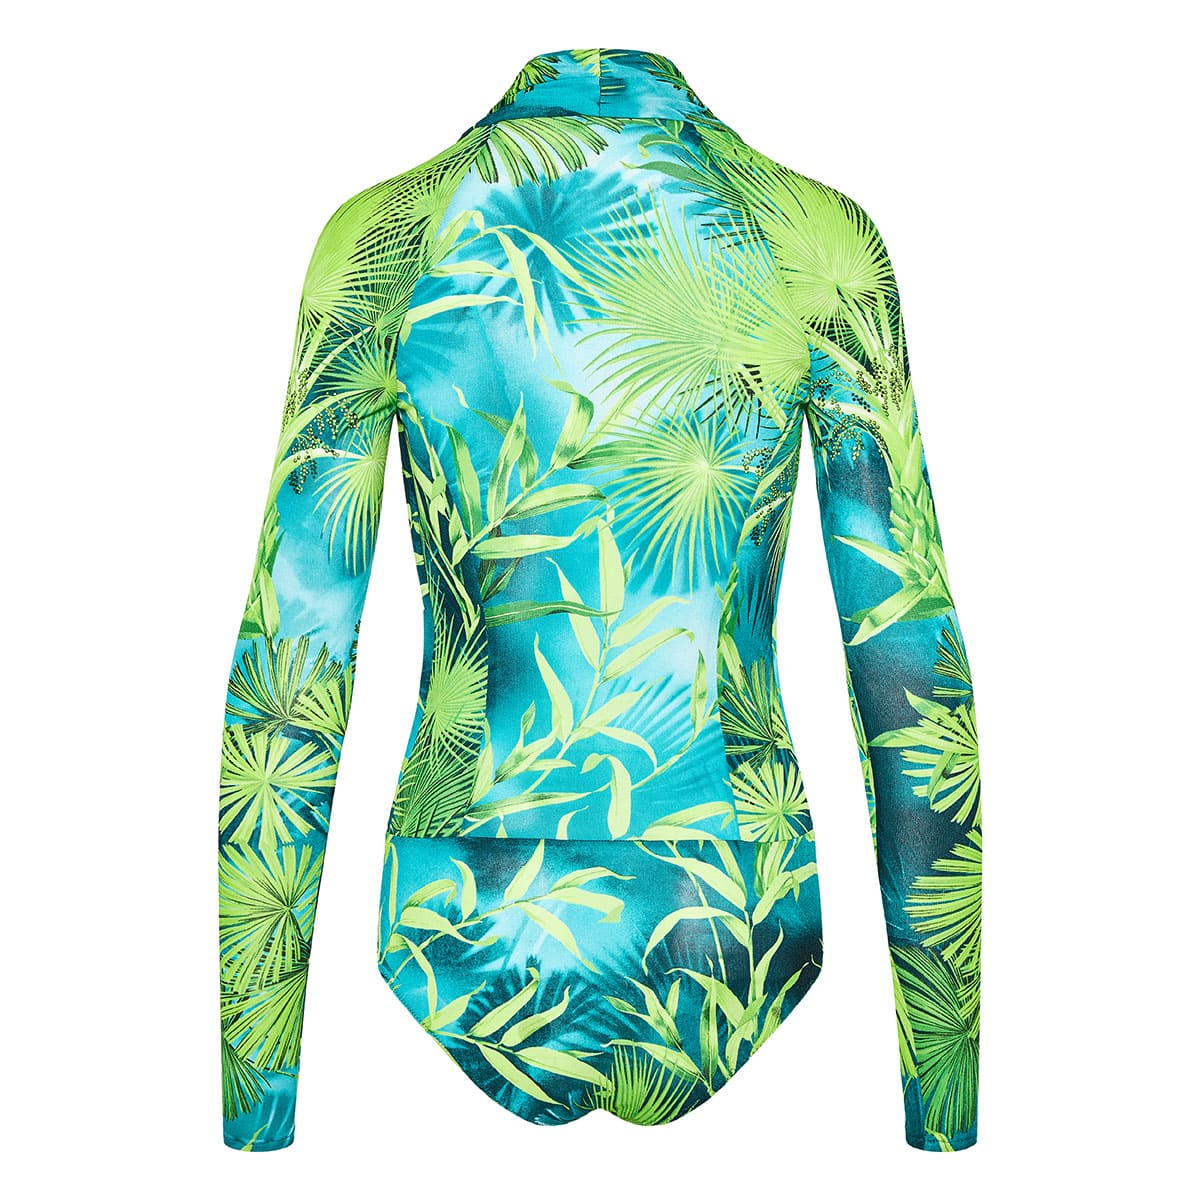 Jungle print plunging bodysuit